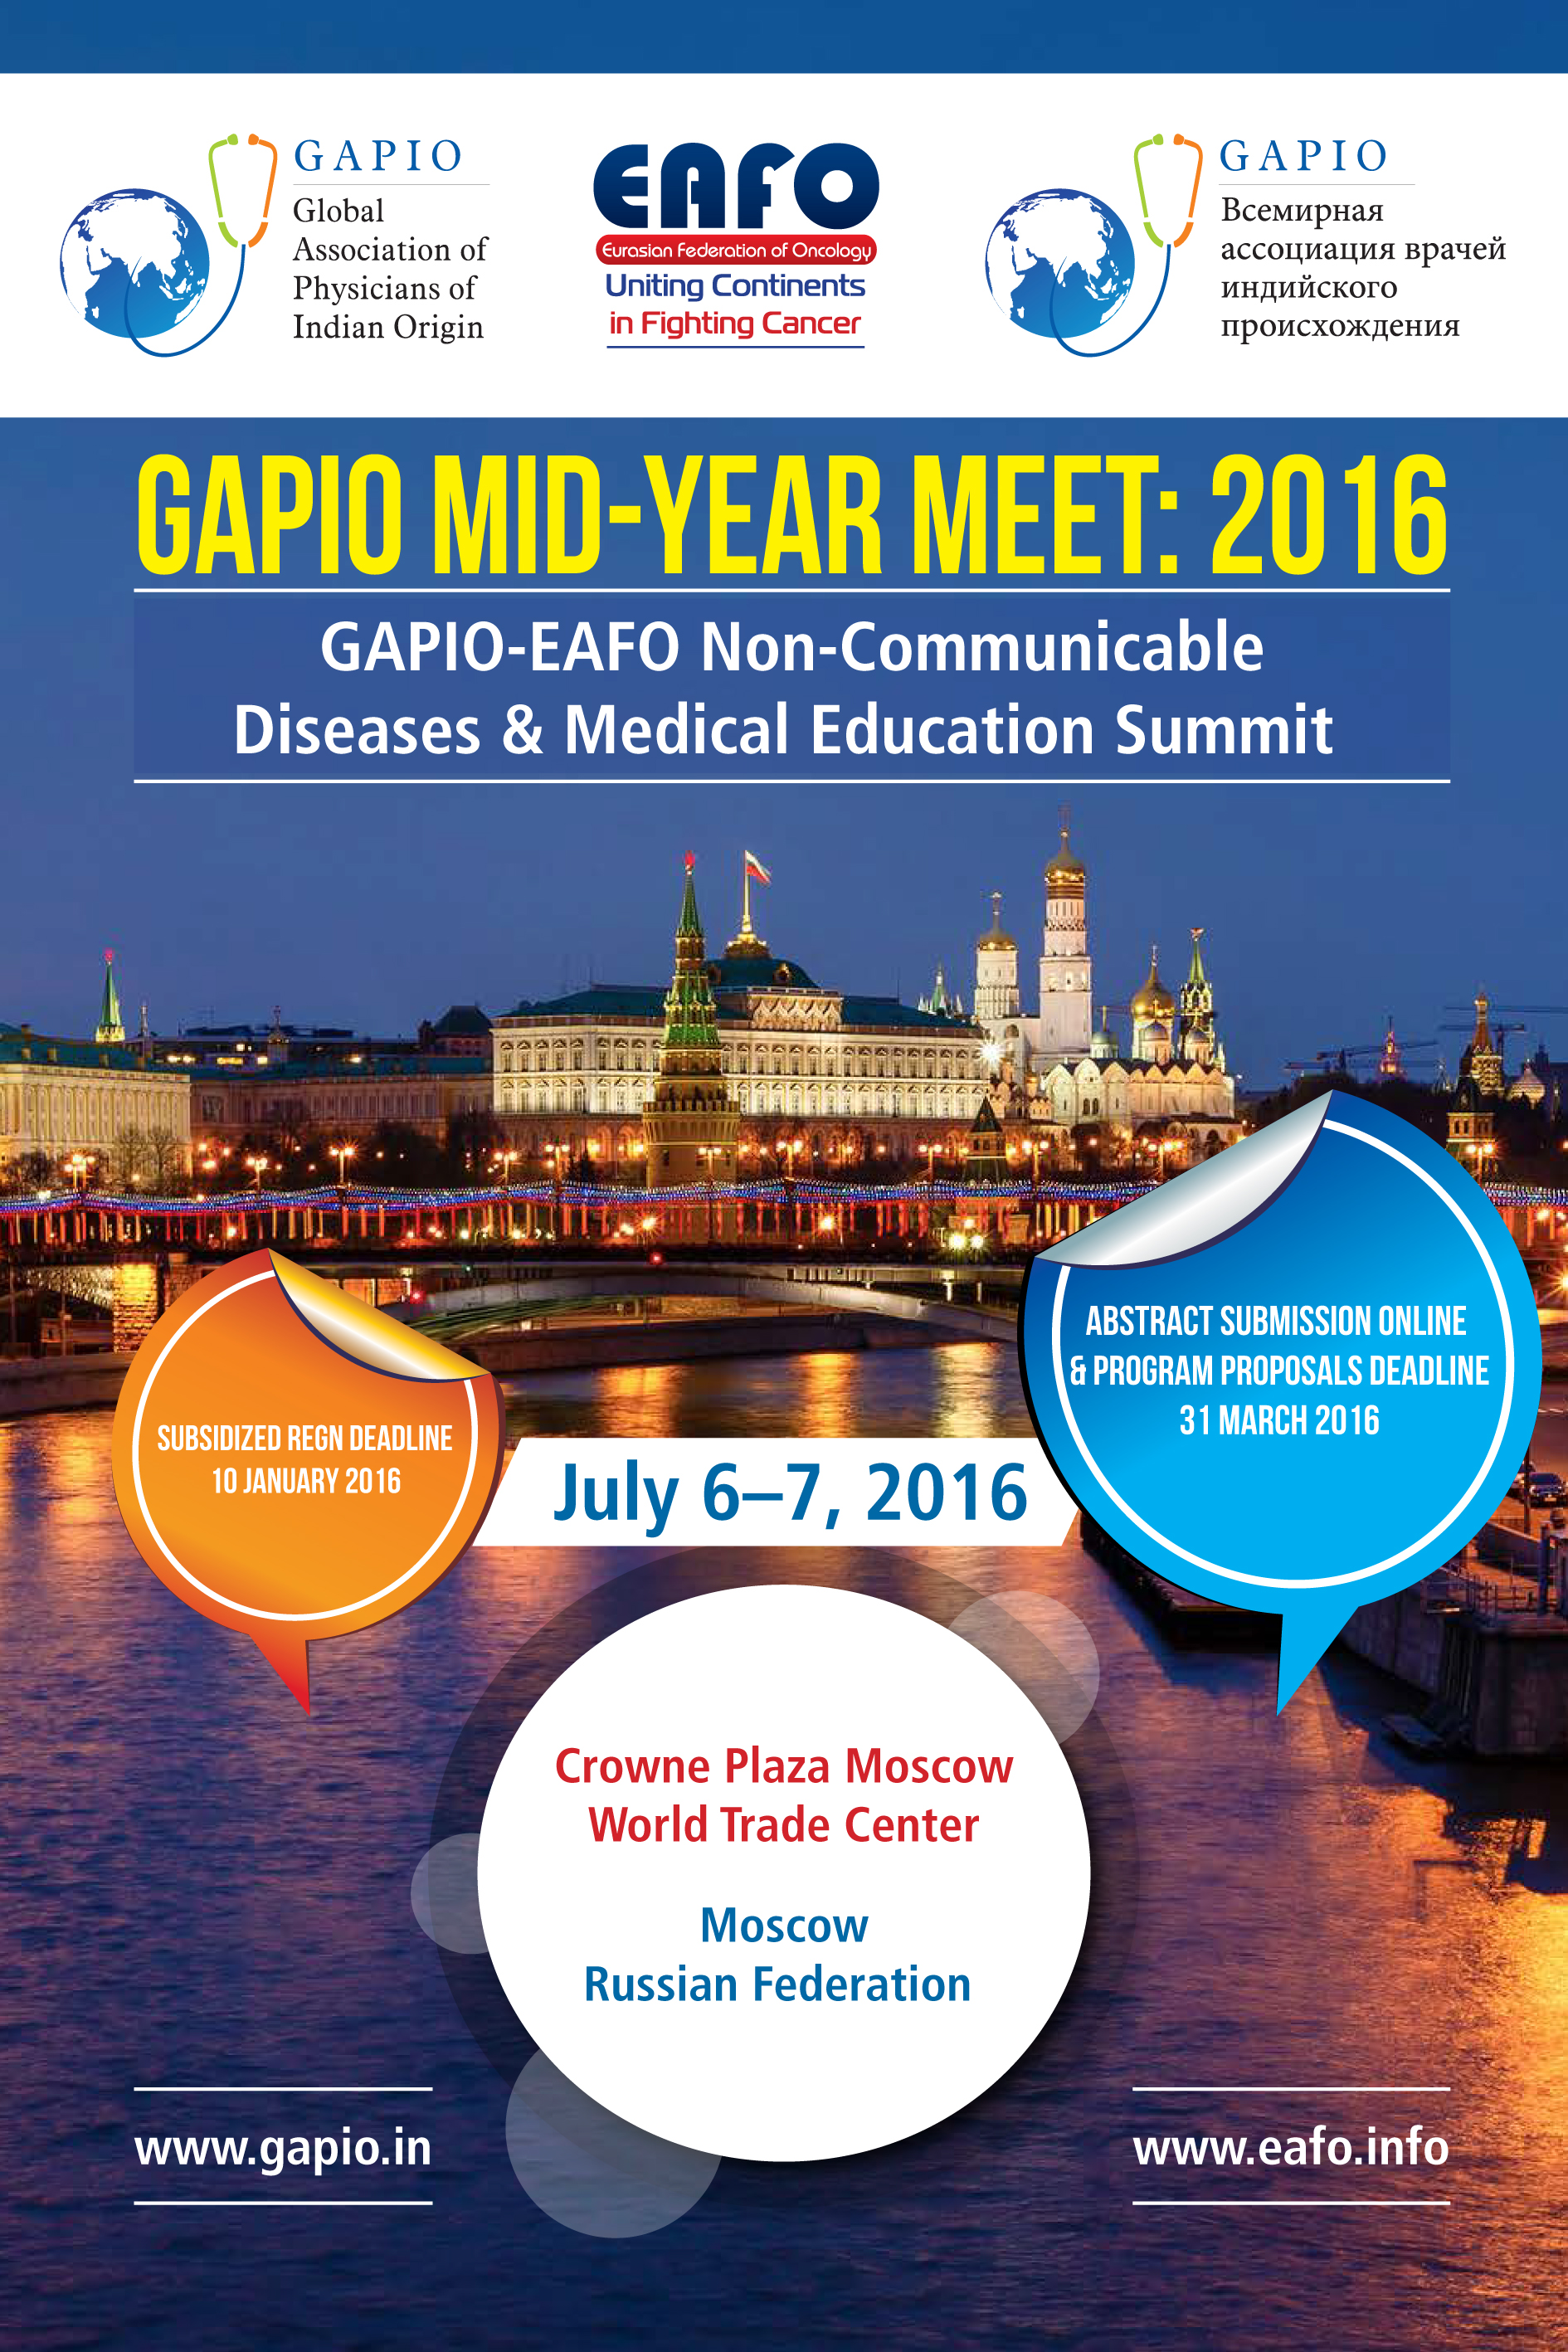 GAPIO Mid-Year Summit 2016 - Moscow